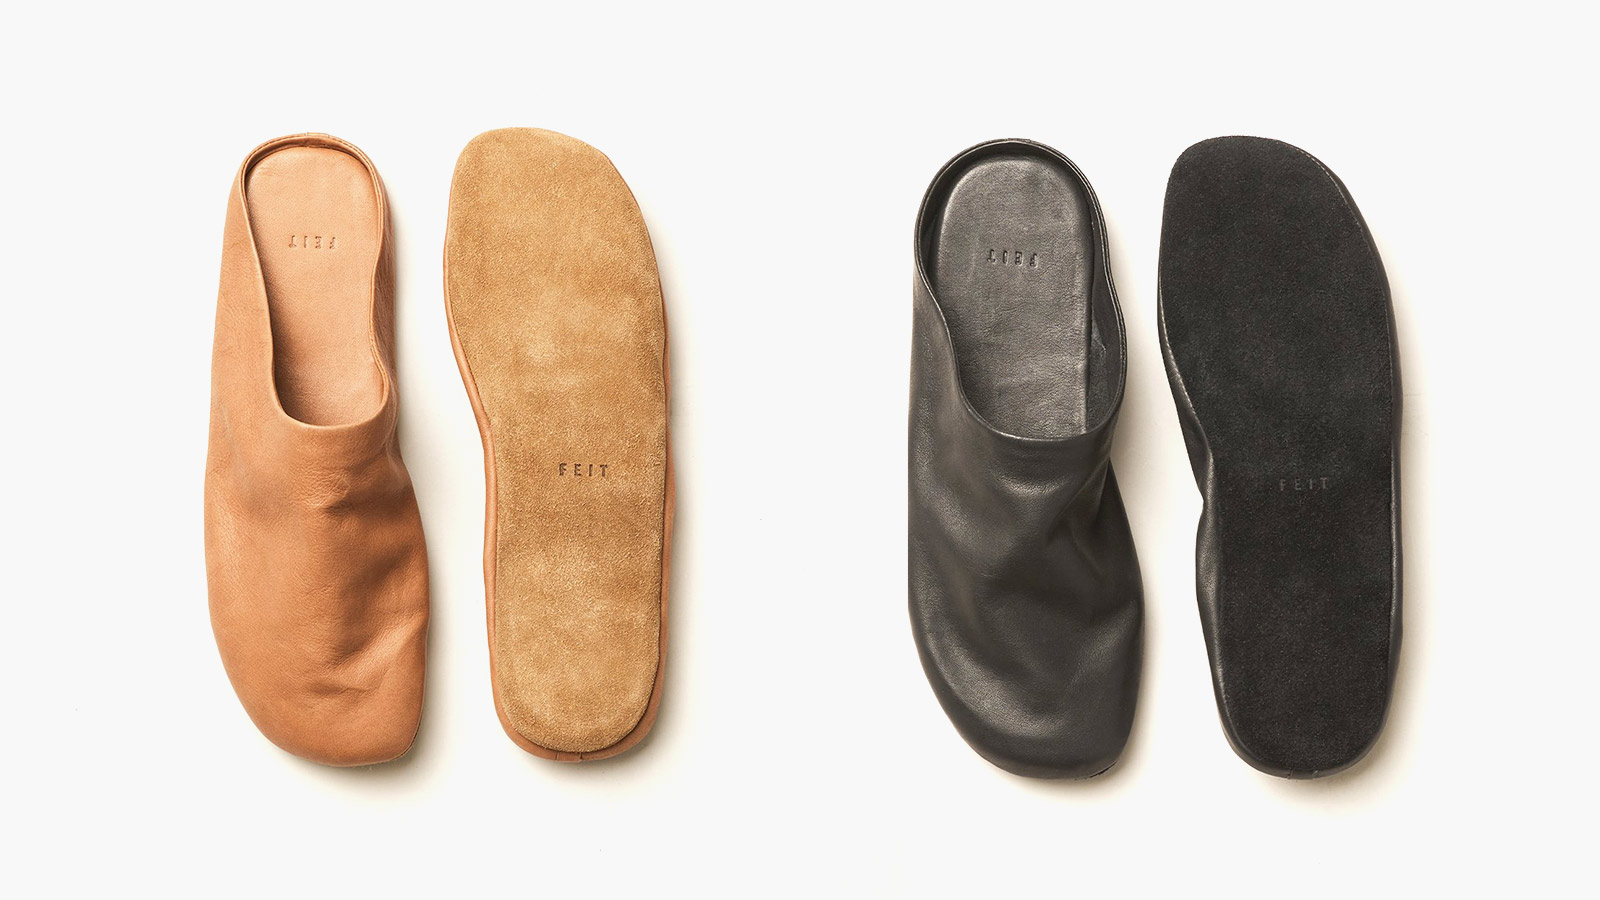 FEIT Indoor Slipper